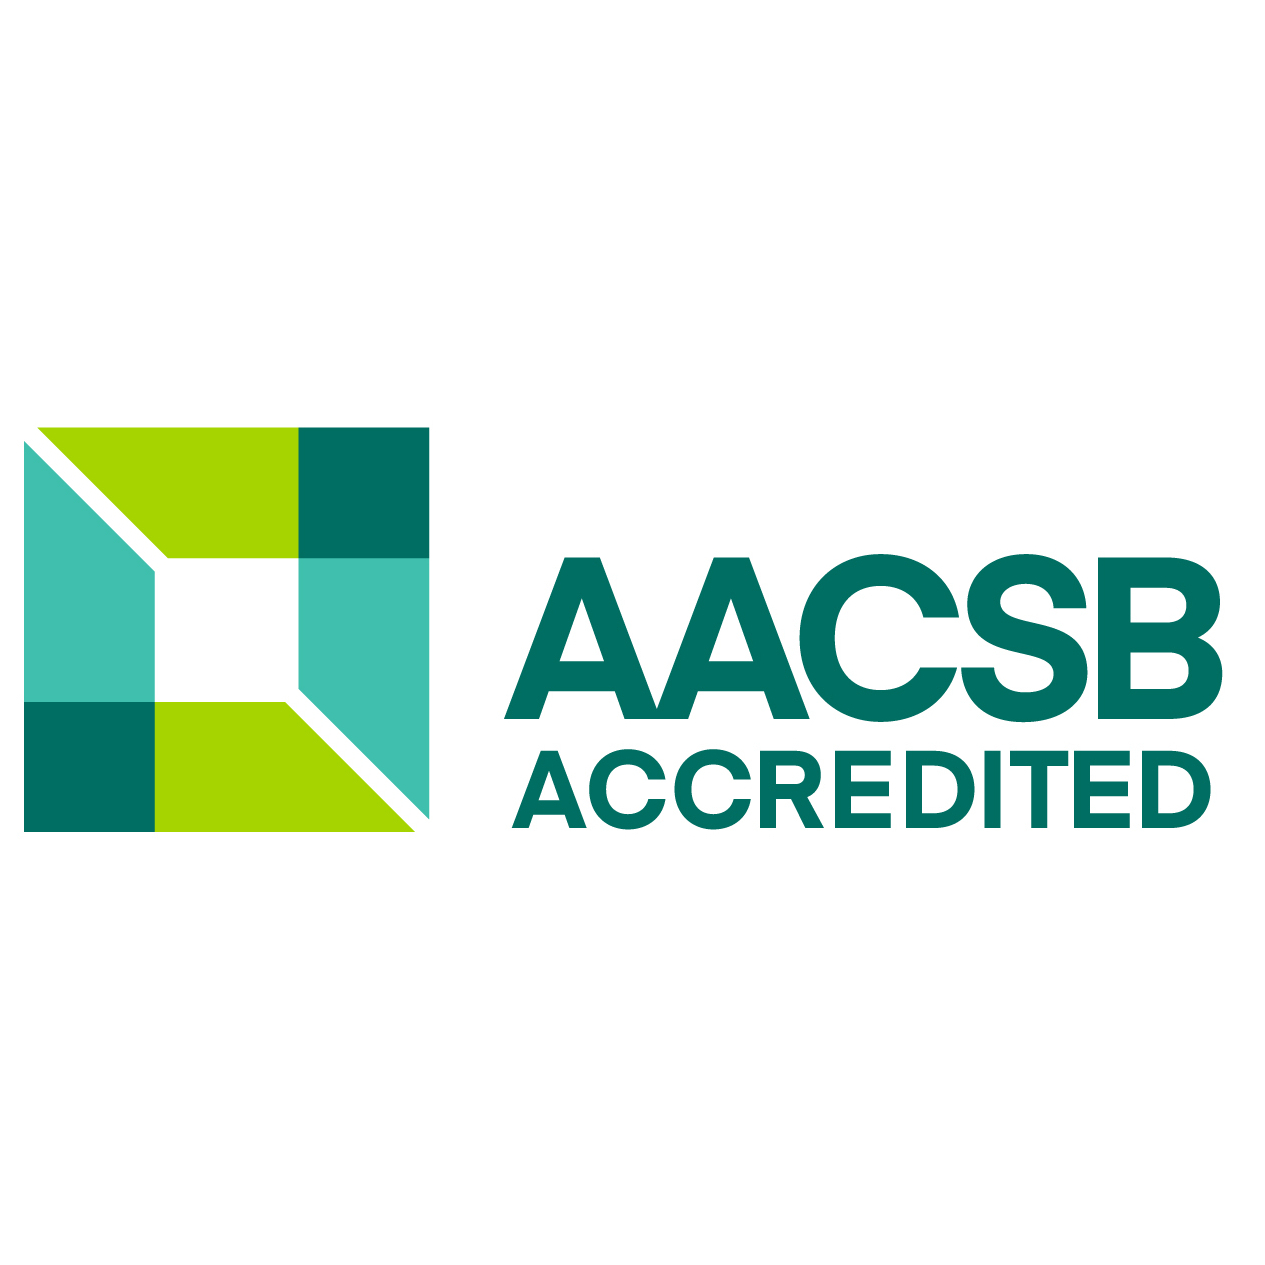 Accreditation by AACSB International